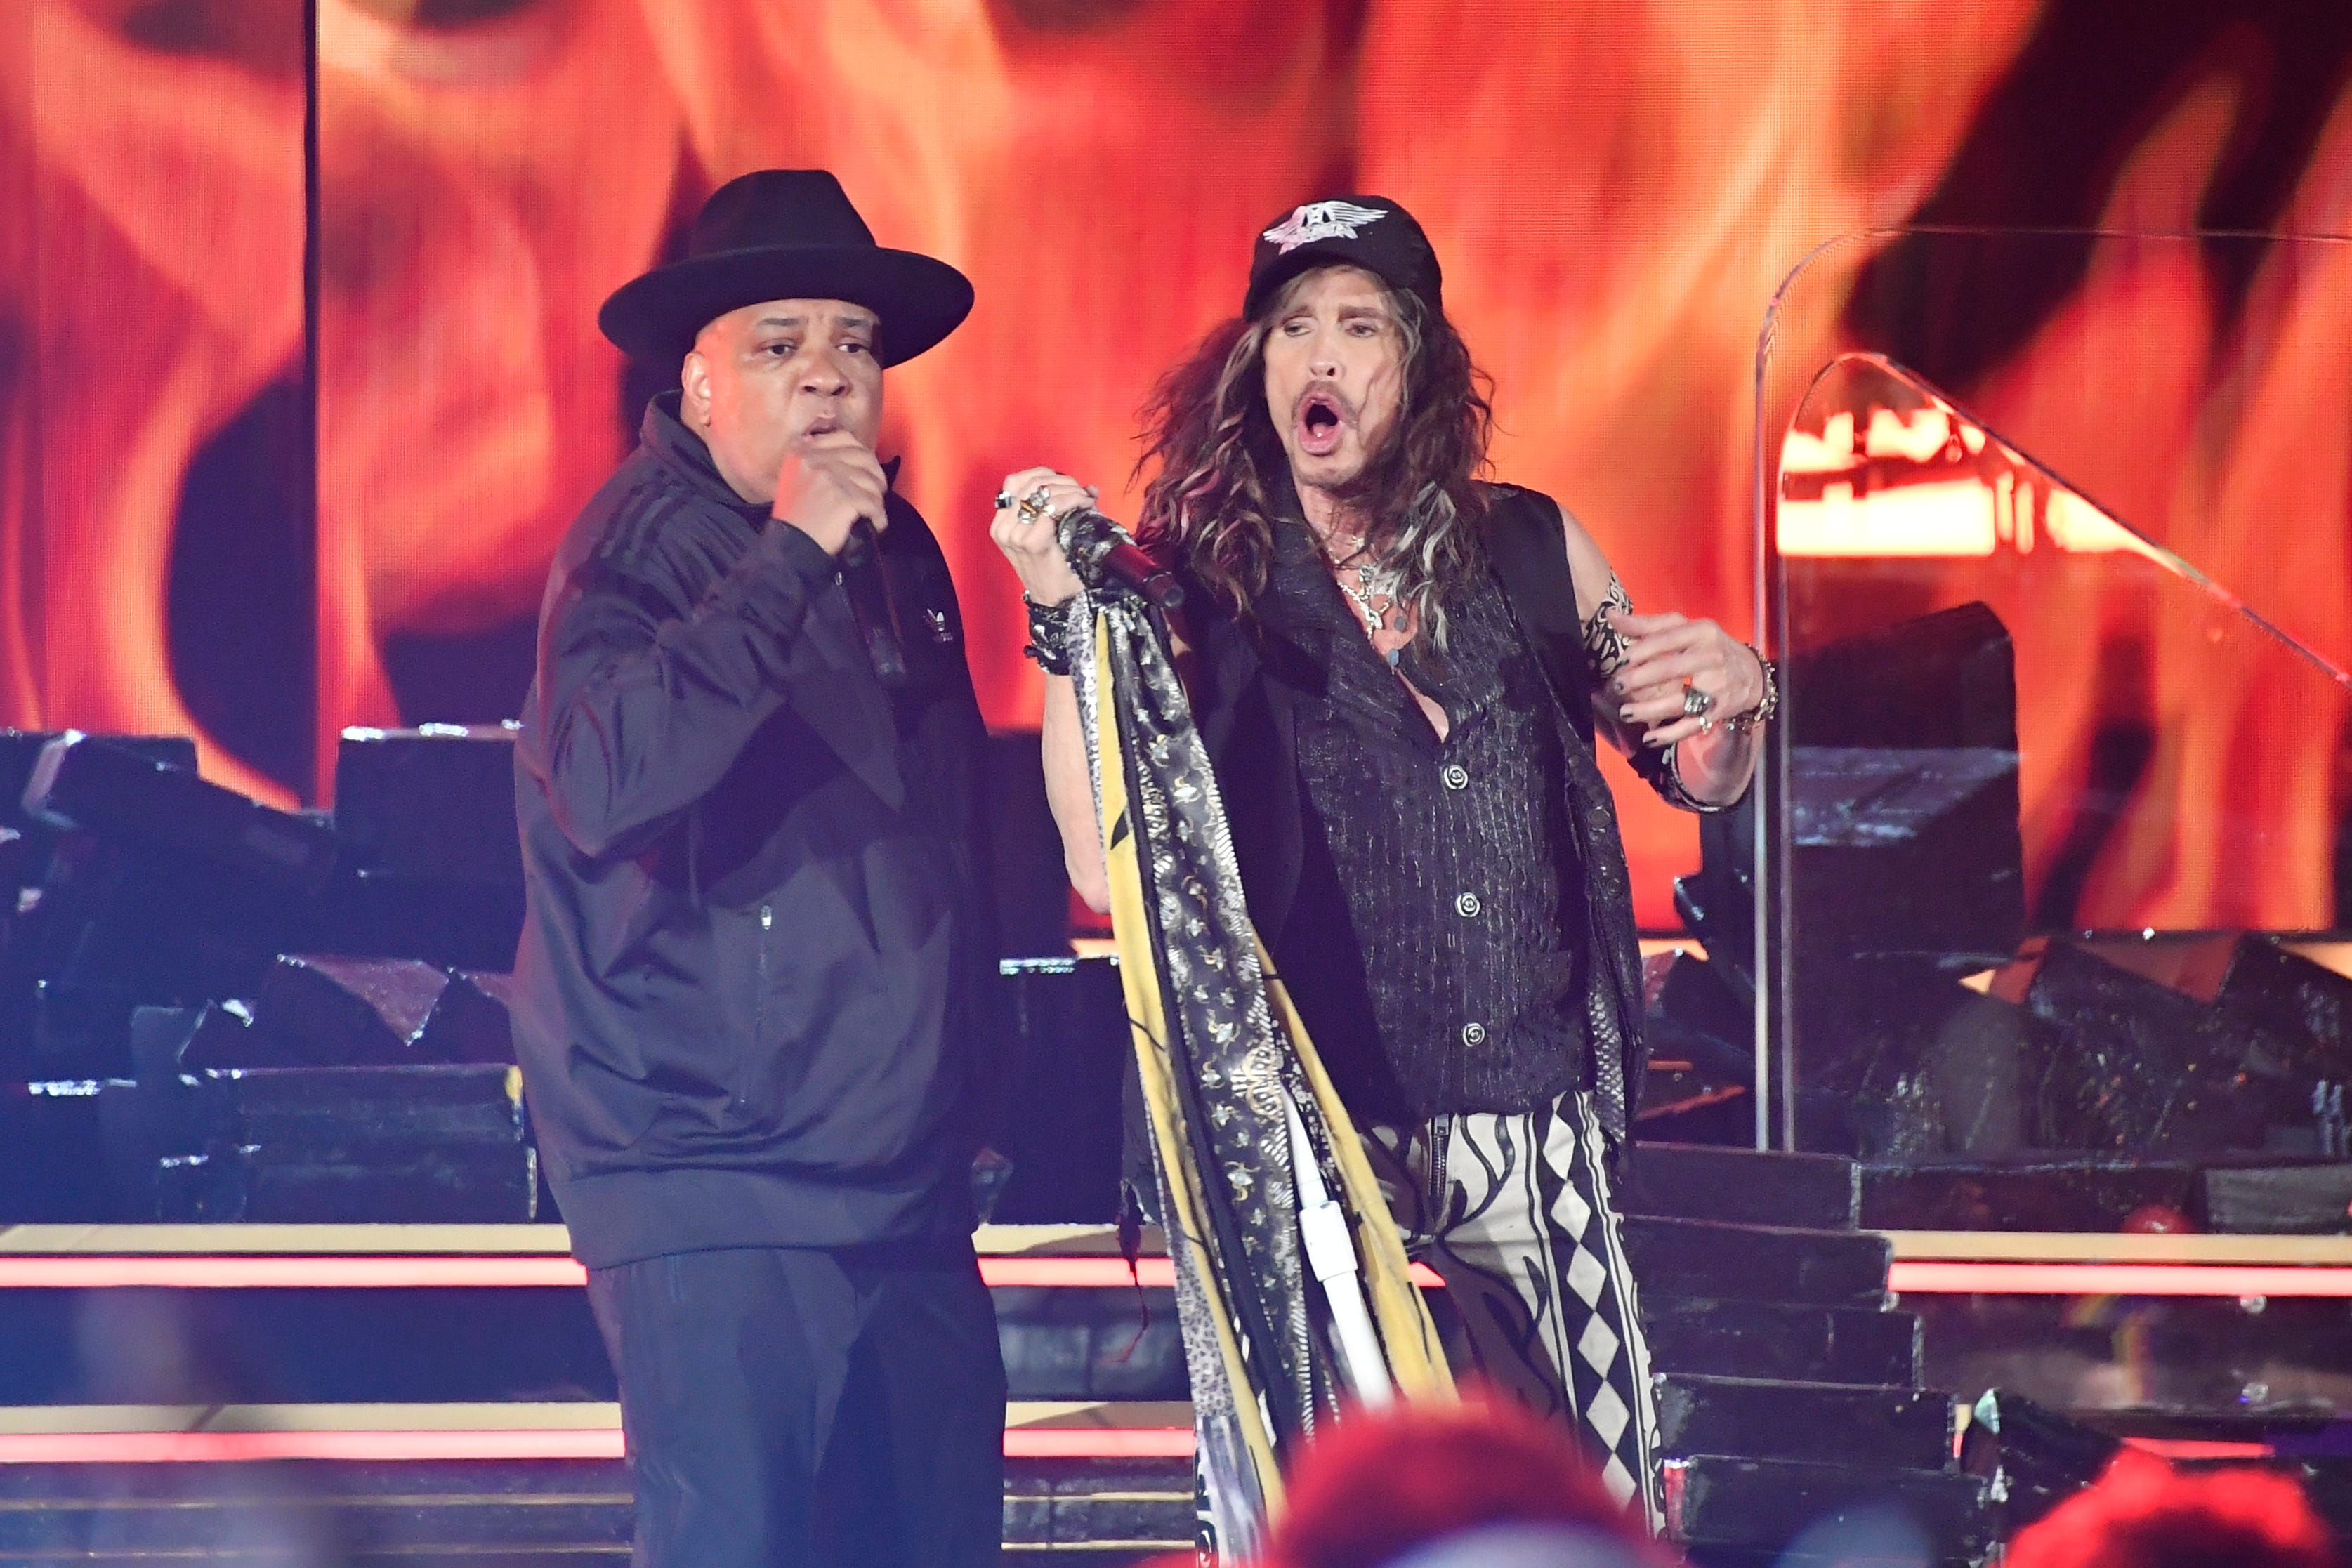 Aerosmith and New Kids on the Block to play hometown concerts at Boston s Fenway Park